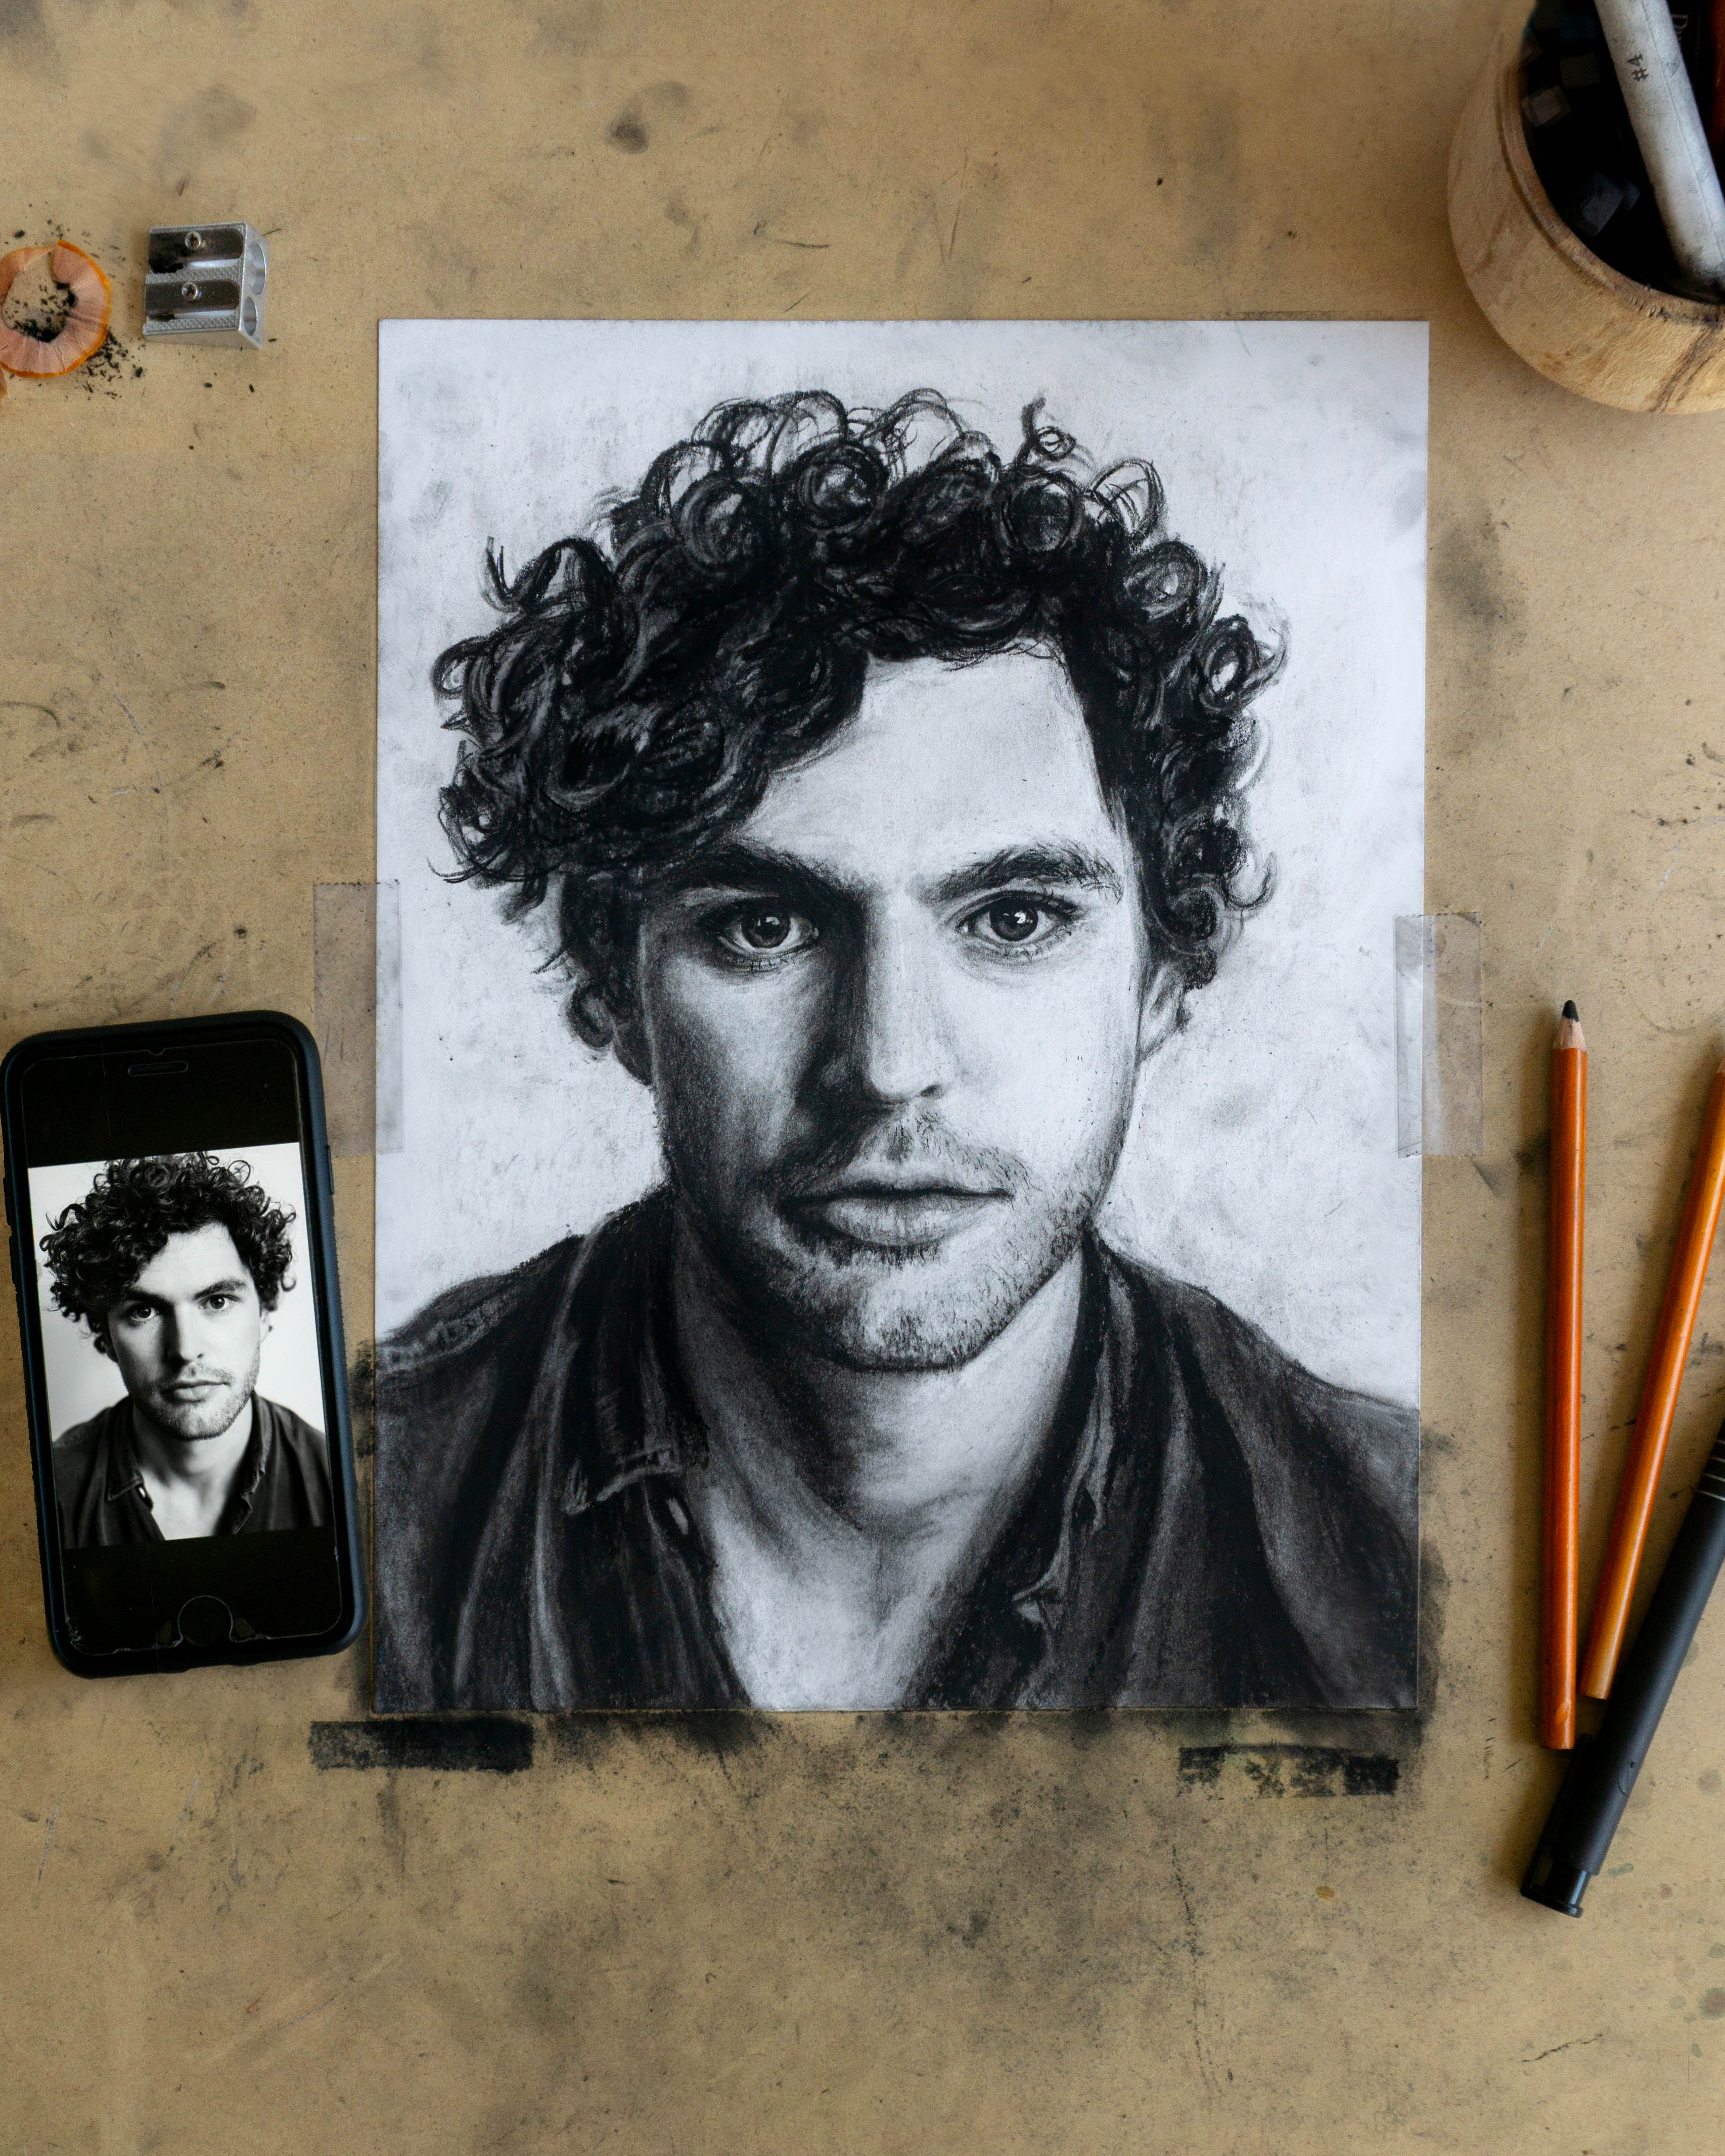 Vance Joy Drawing - Charcoal